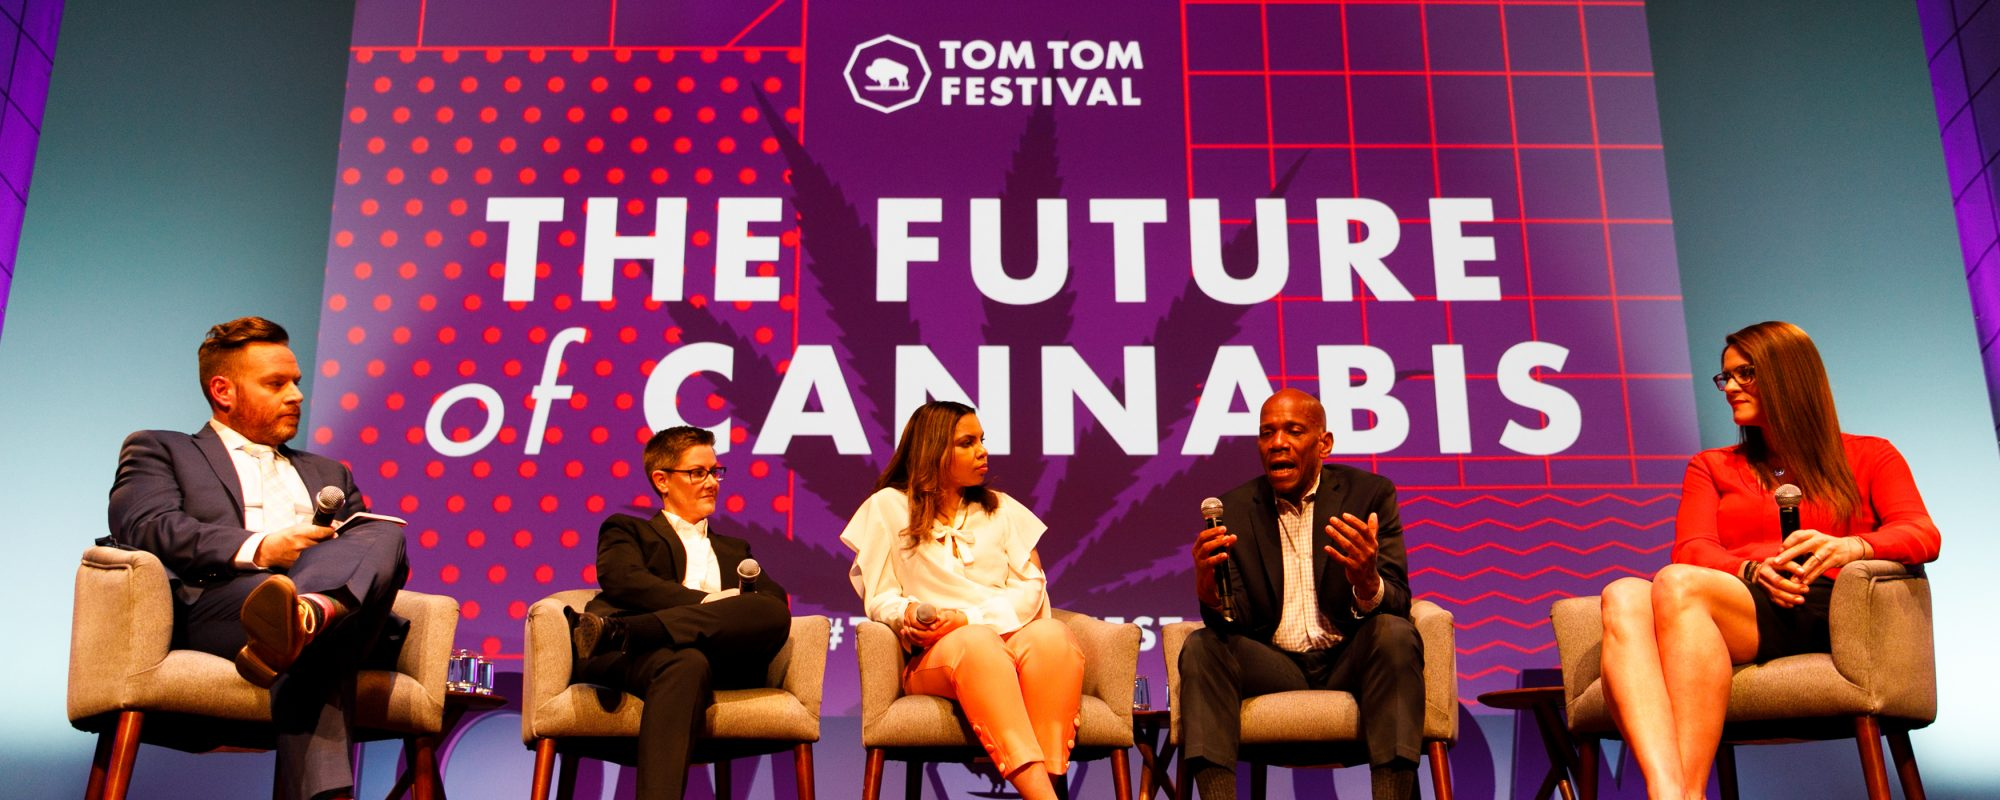 4.10.19-Future-of-Cannabis-Tom-Daly-Photography-23-2000x800